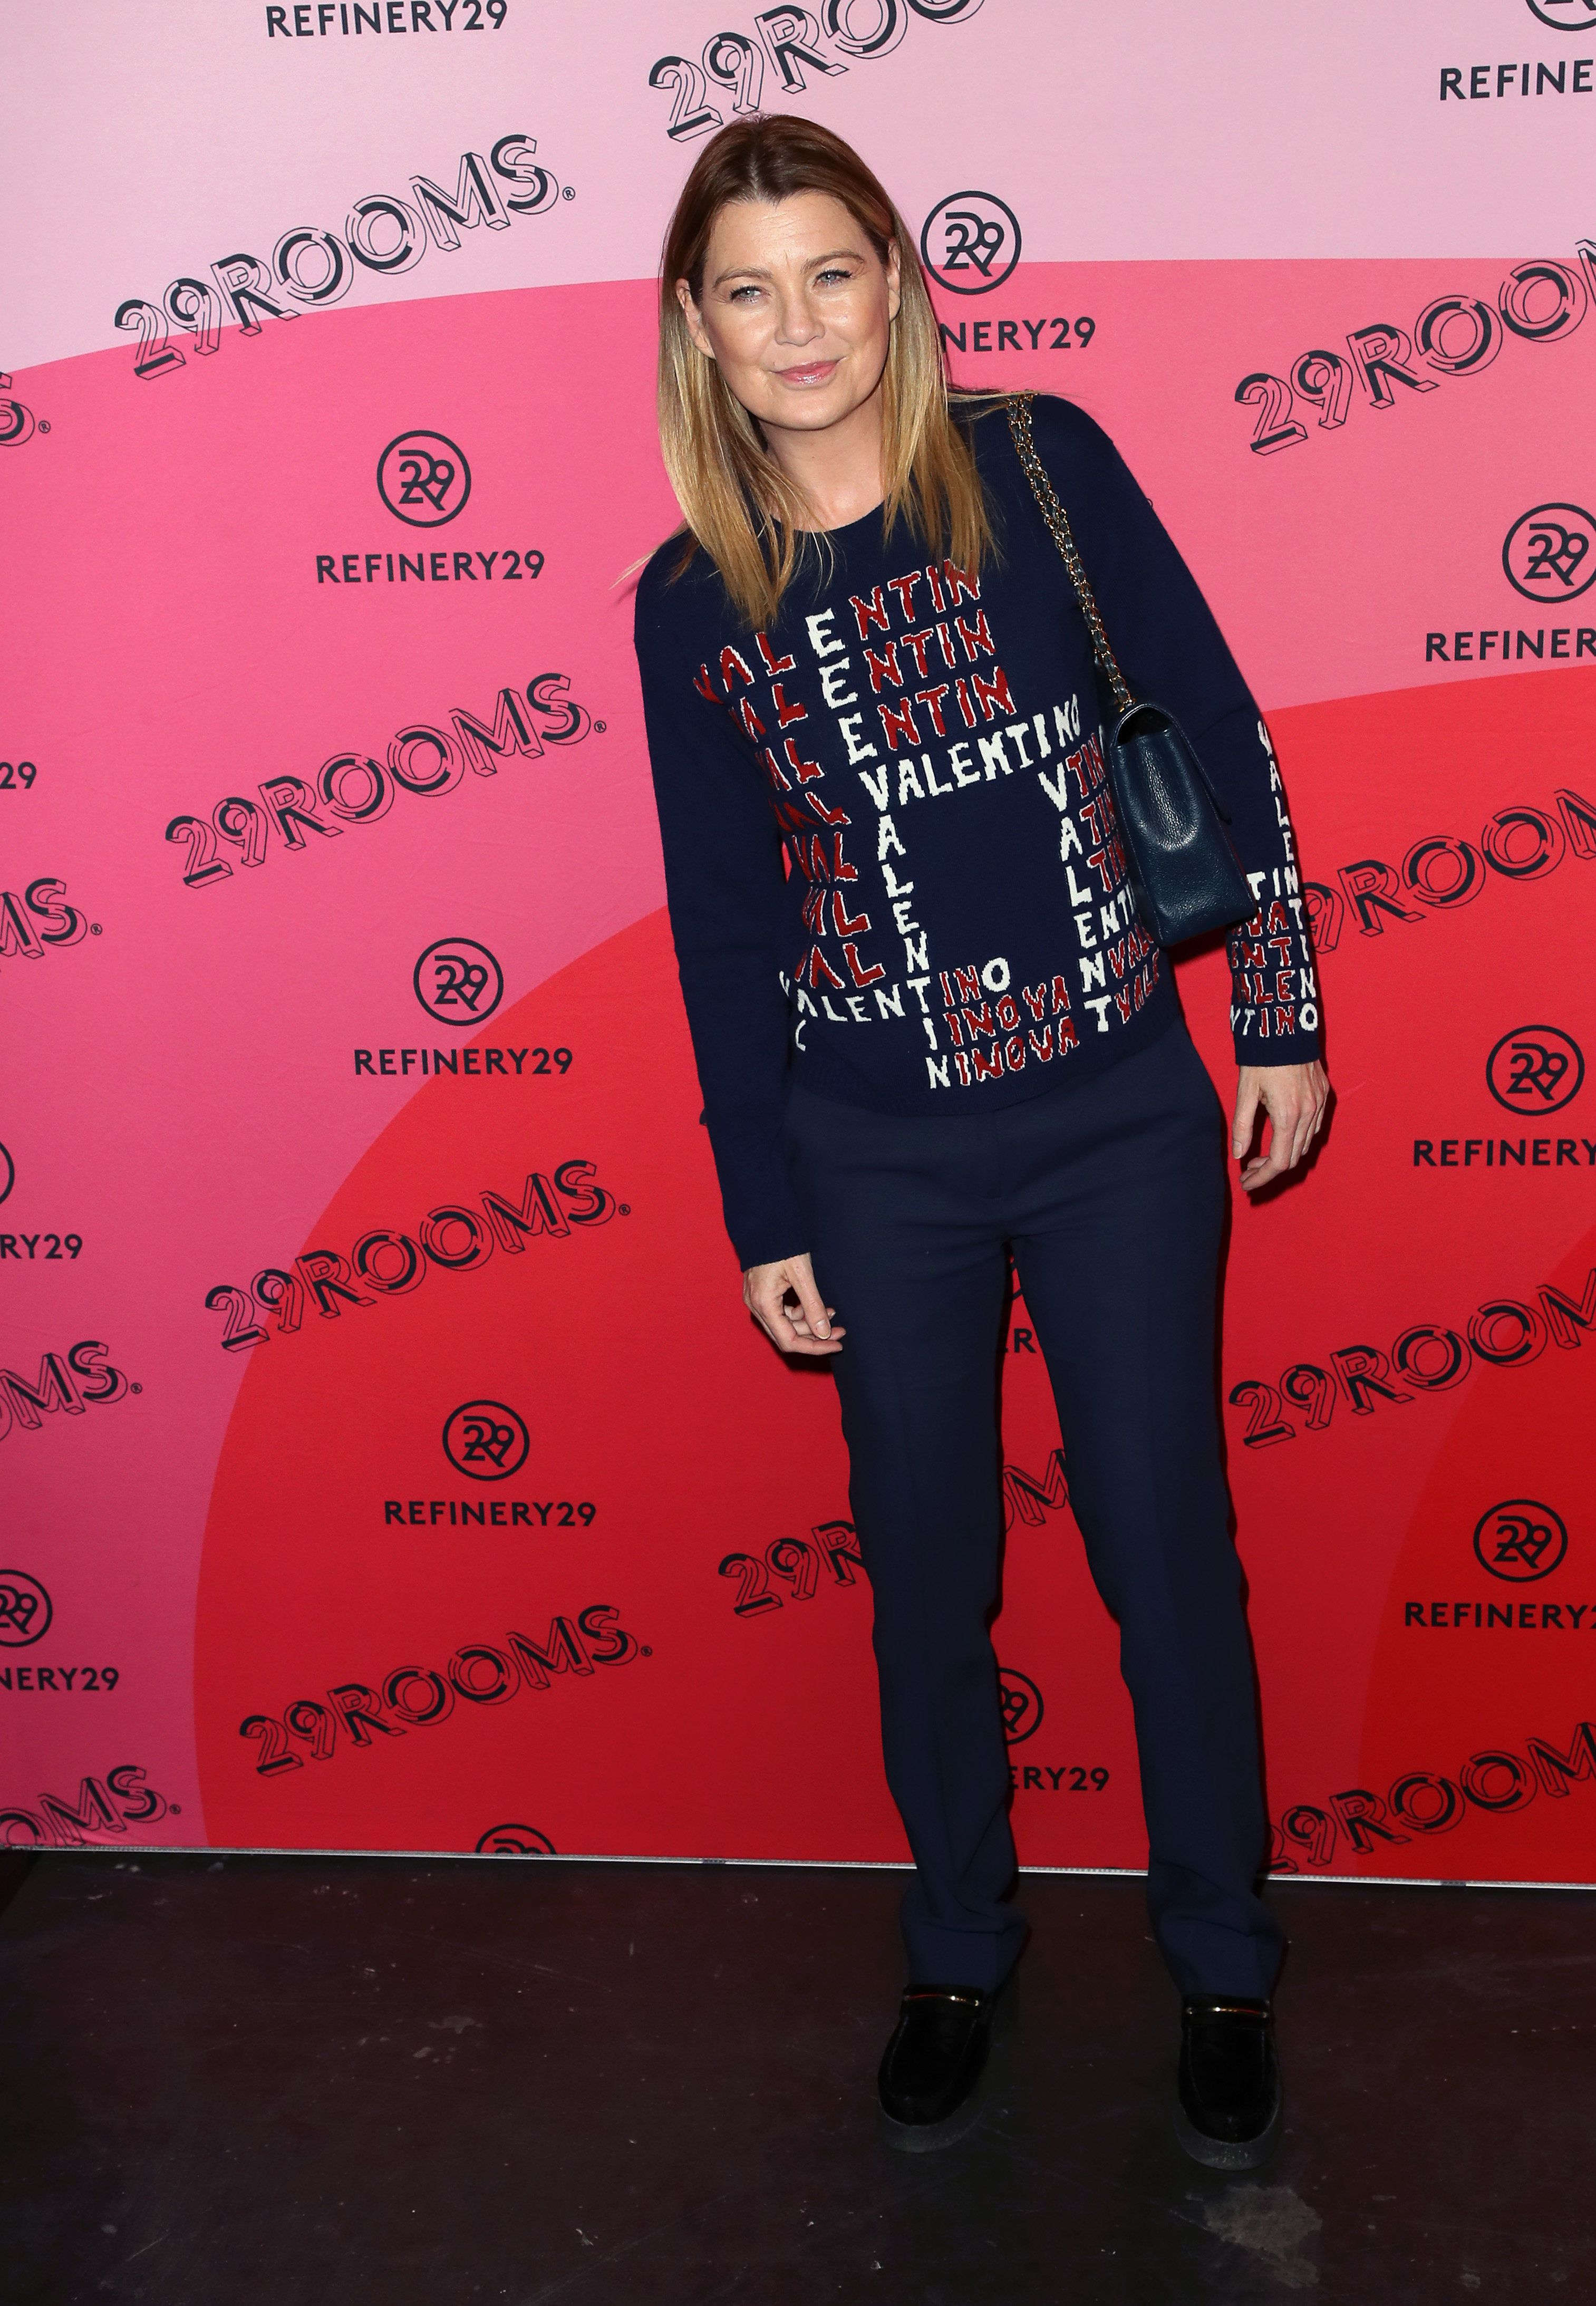 LOS ANGELES, CALIFORNIA - DECEMBER 04: Ellen Pompeo attends Refinery29's 29Rooms Los Angeles 2018: Expand Your Reality at The Reef on December 04, 2018 in Los Angeles, California. (Photo by David Livingston/Getty Images)